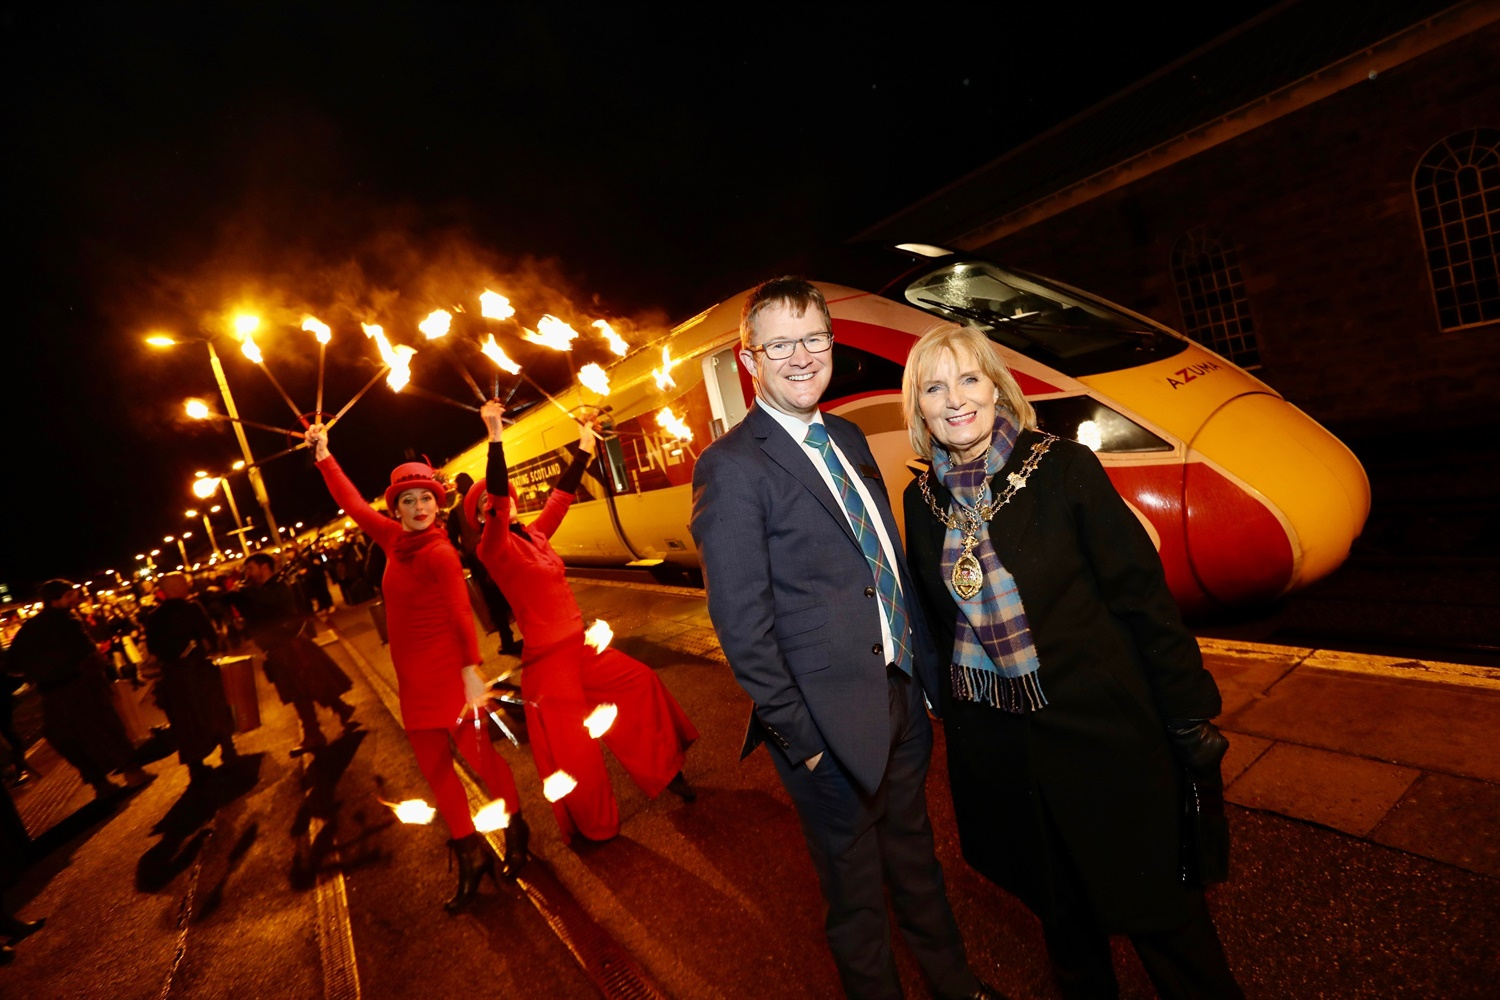 Azuma trains arrive on Highland Chieftain route